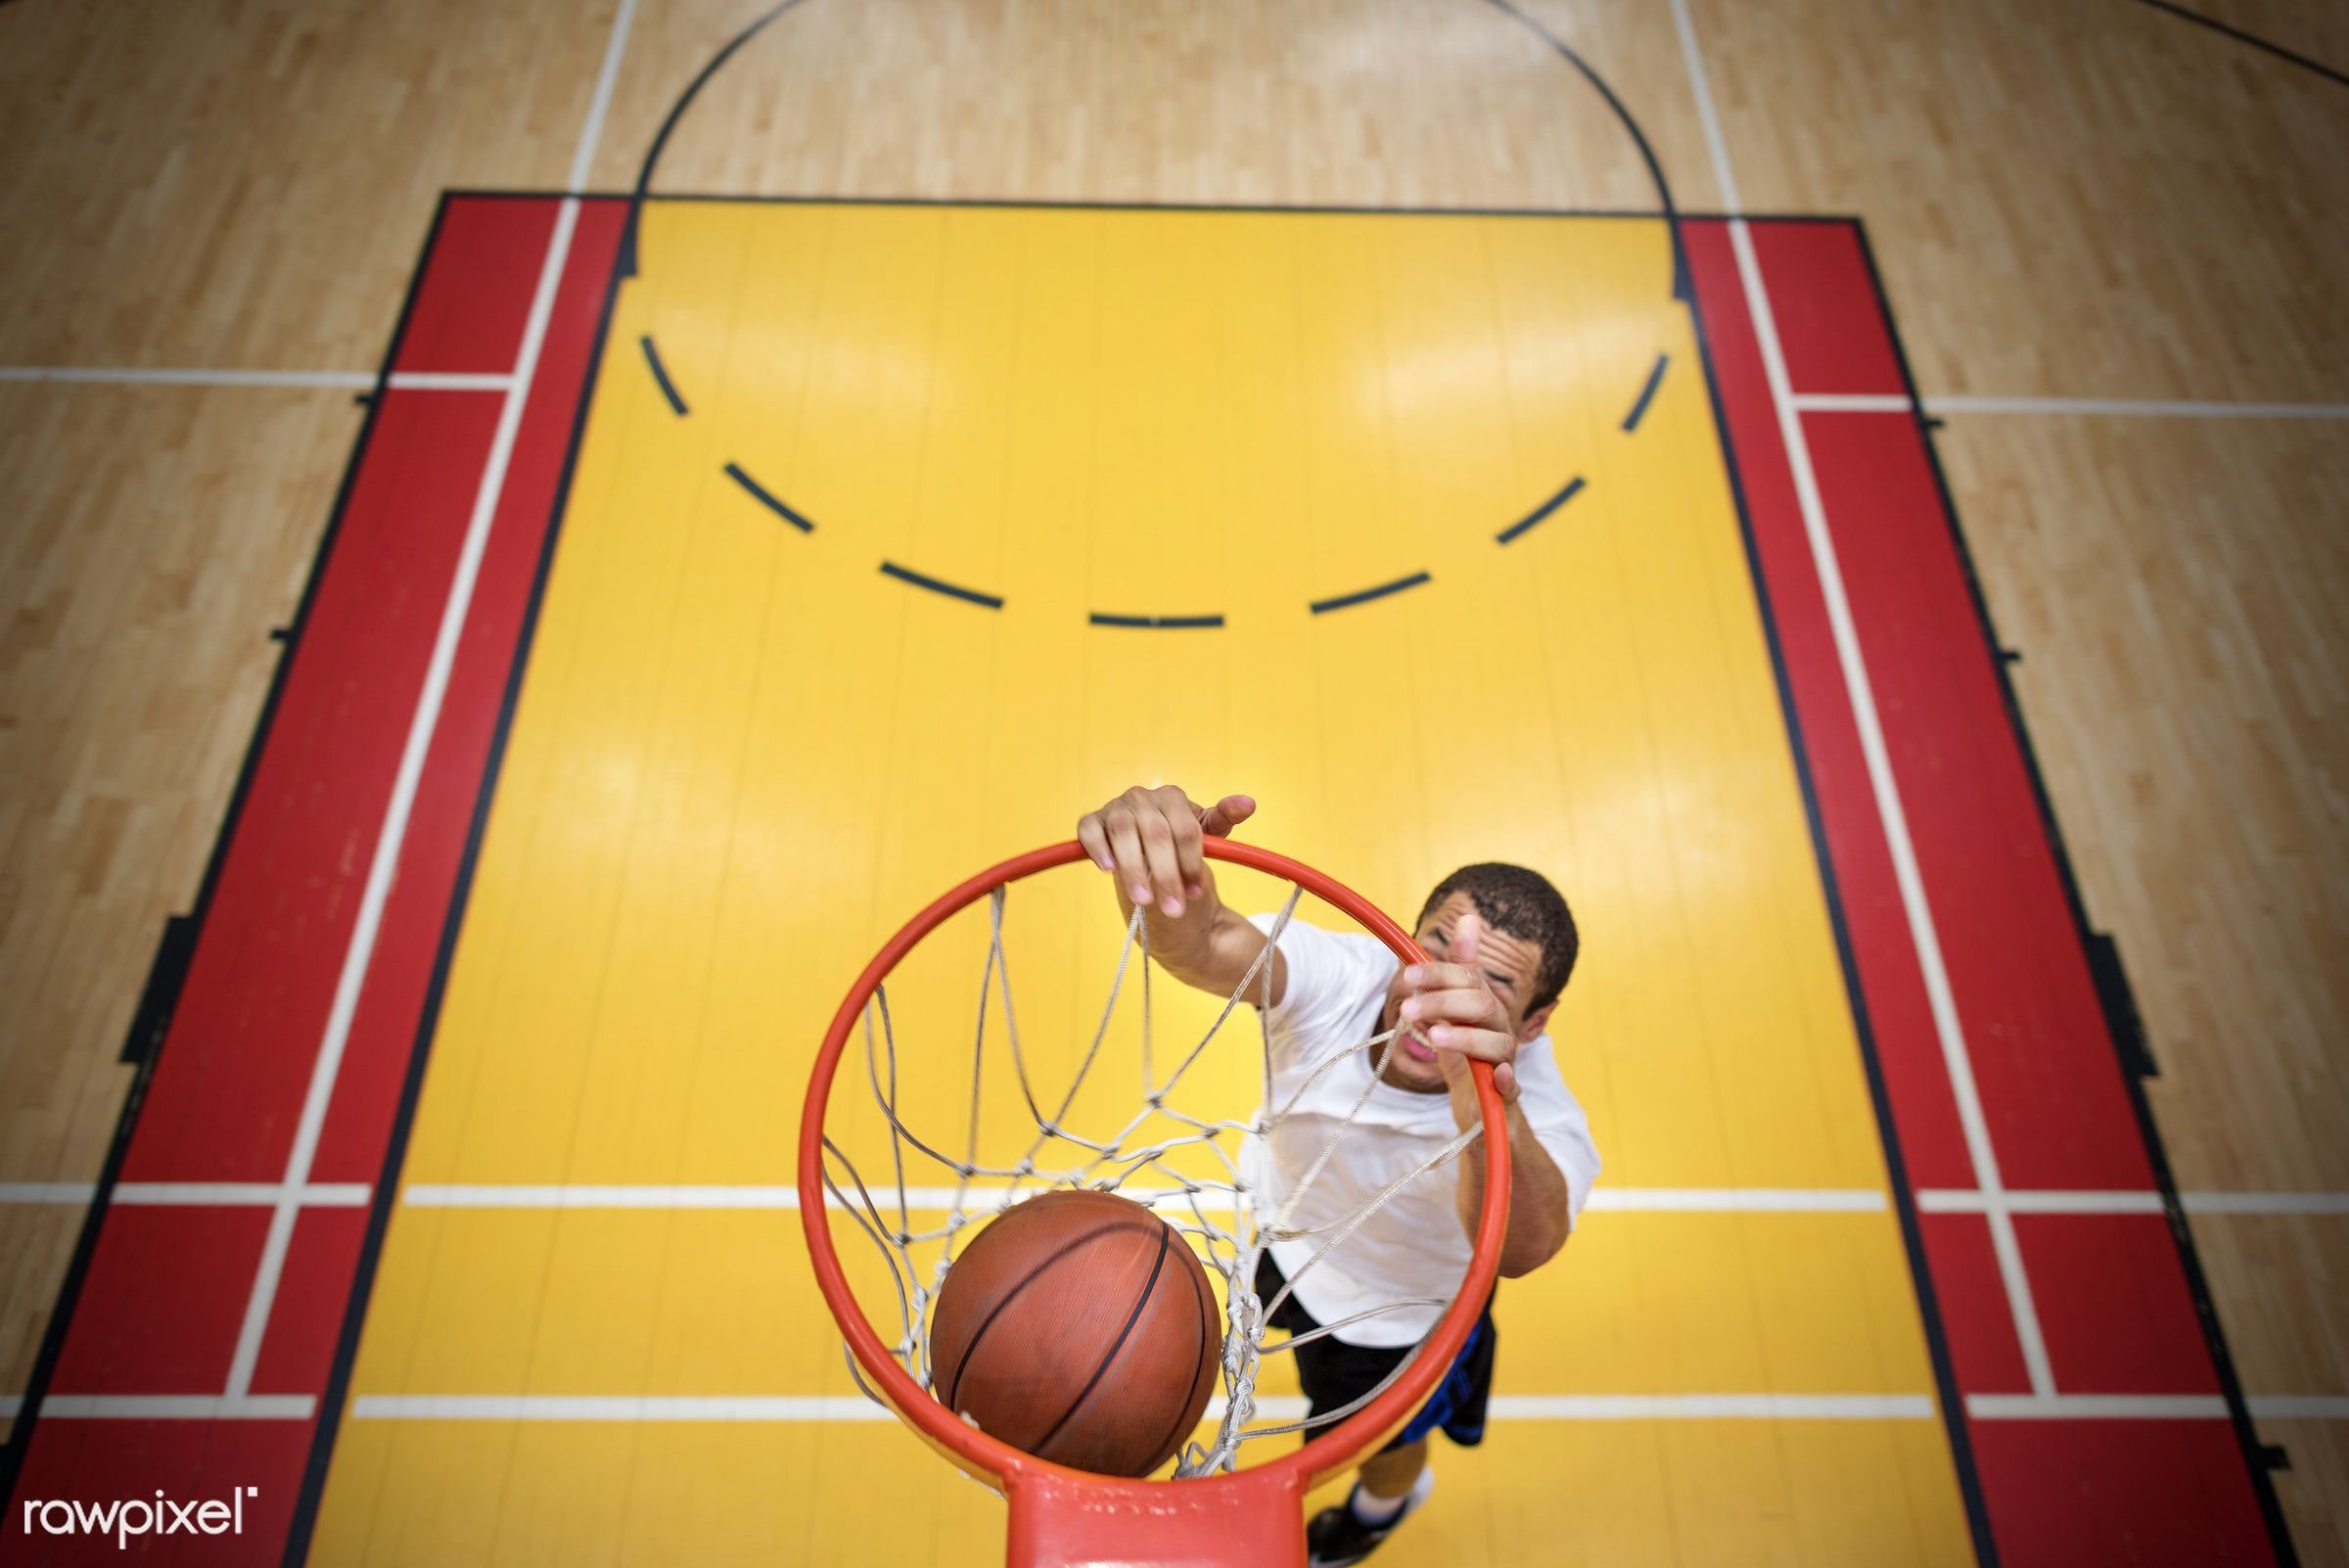 Young basketball player shoot - basketball, dunk, activity, alone, ball, boy, caucasian, court, exercise, game, gym,...